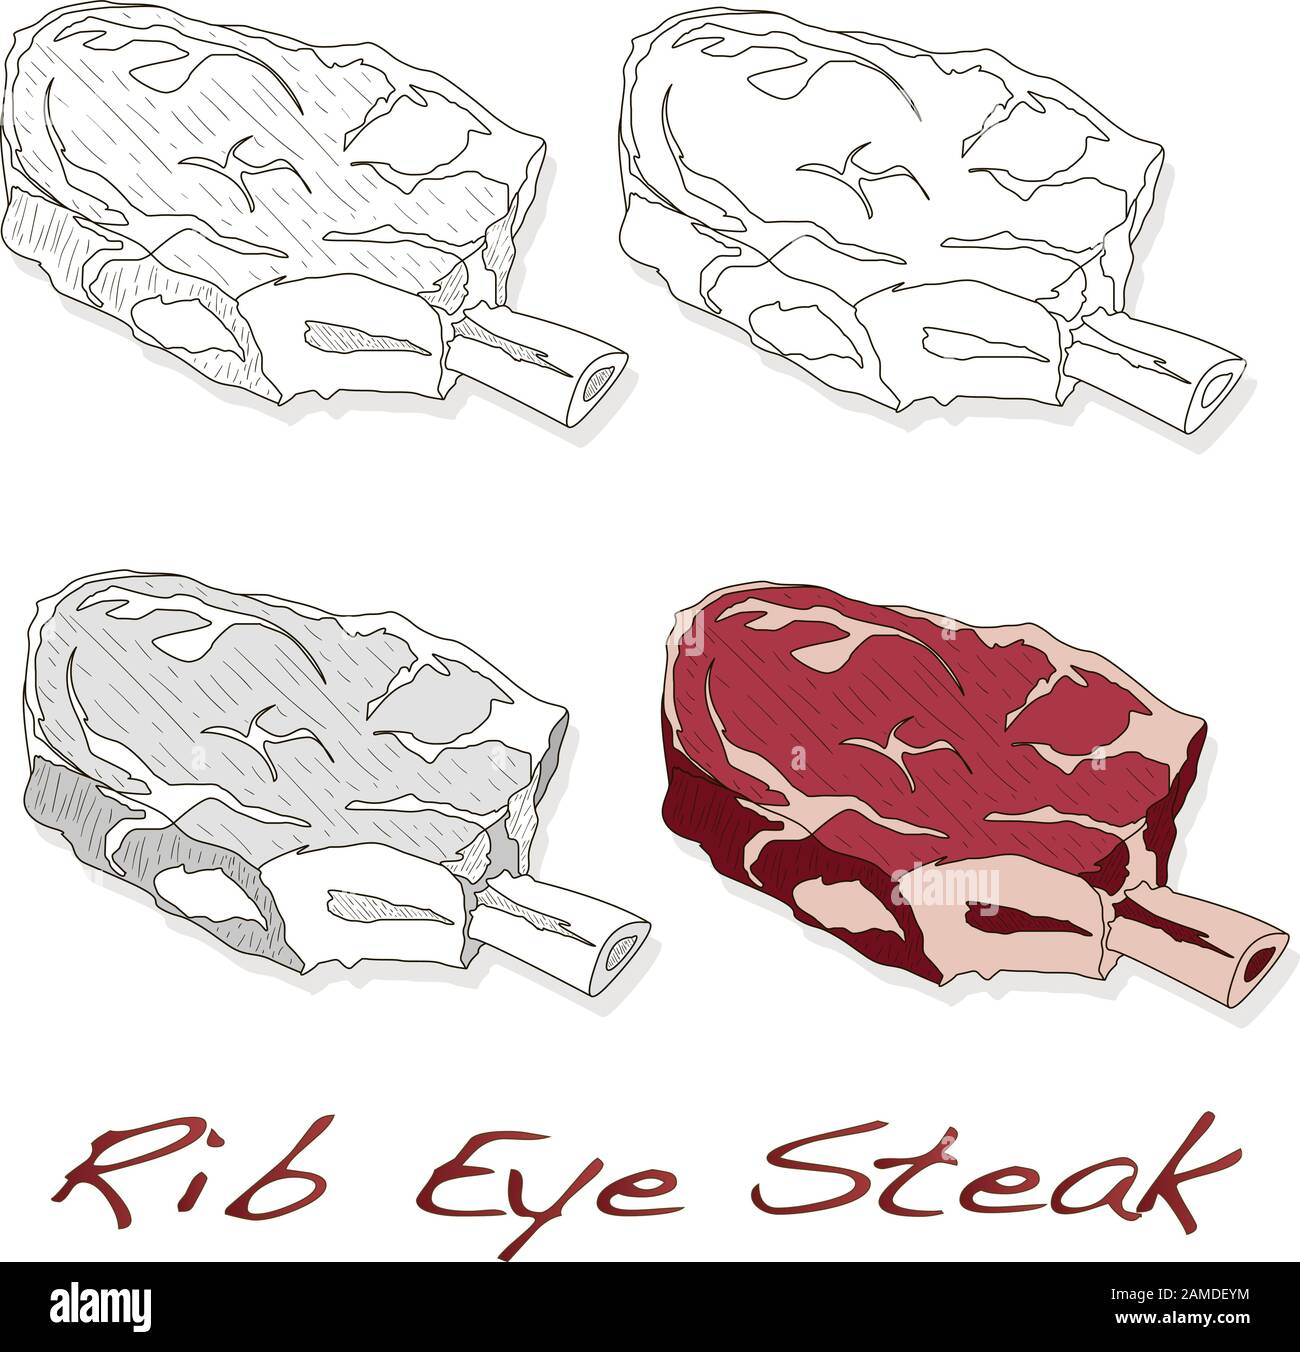 Steak illustration set. Vector images of steaks in different grafic styles, isolated on white background Stock Vector